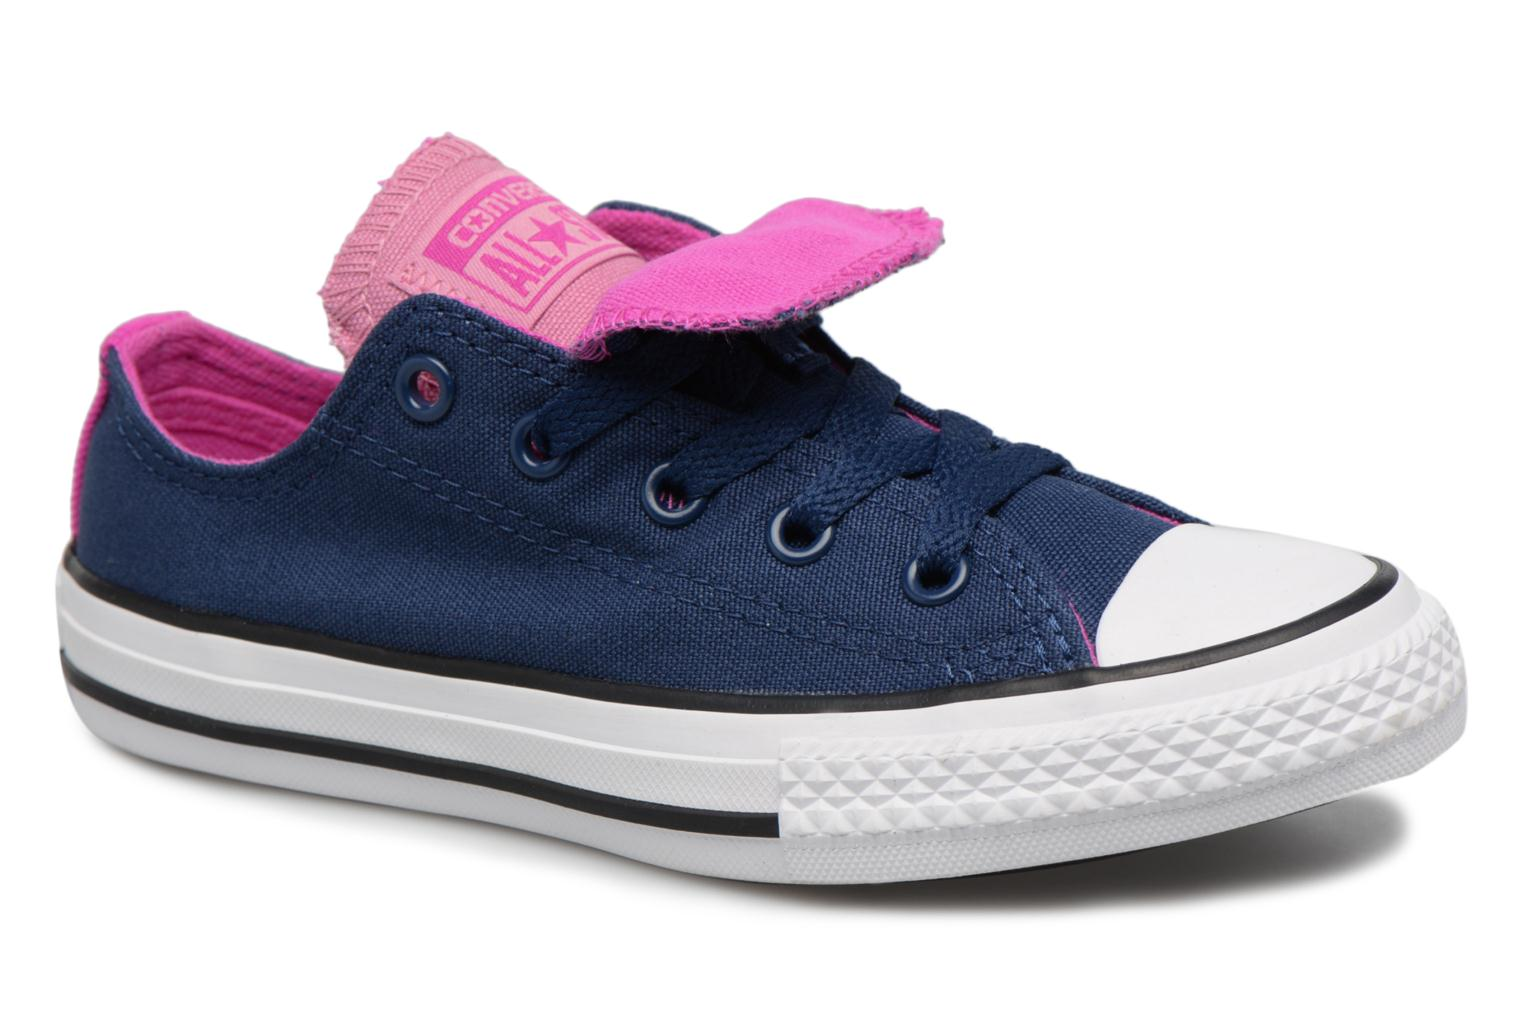 Converse - Kinder - Chuck Taylor All Star Double Tongue Ox Fundamentals Spring - Sneaker - blau